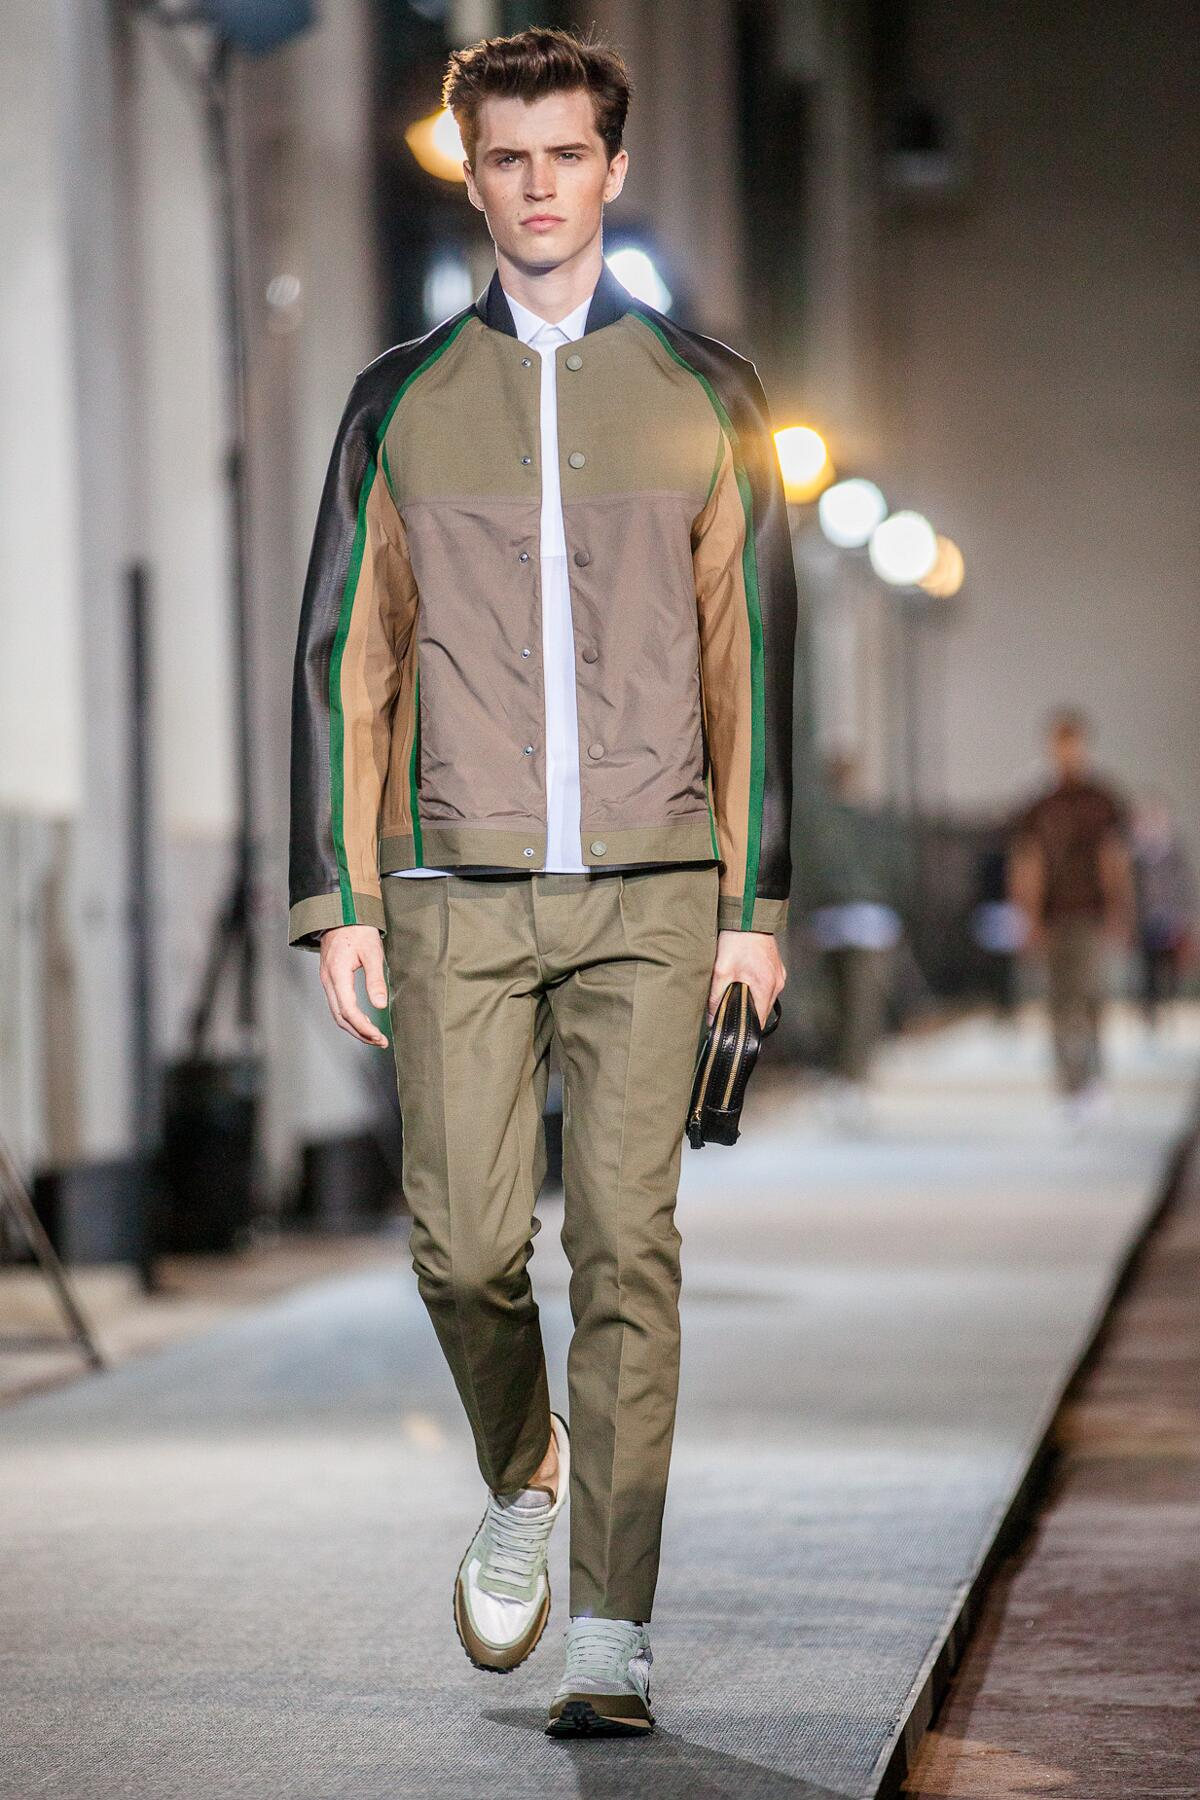 Catwalk Valentino Spring Summer 2013 Men Collection Pitti Immagine Uomo